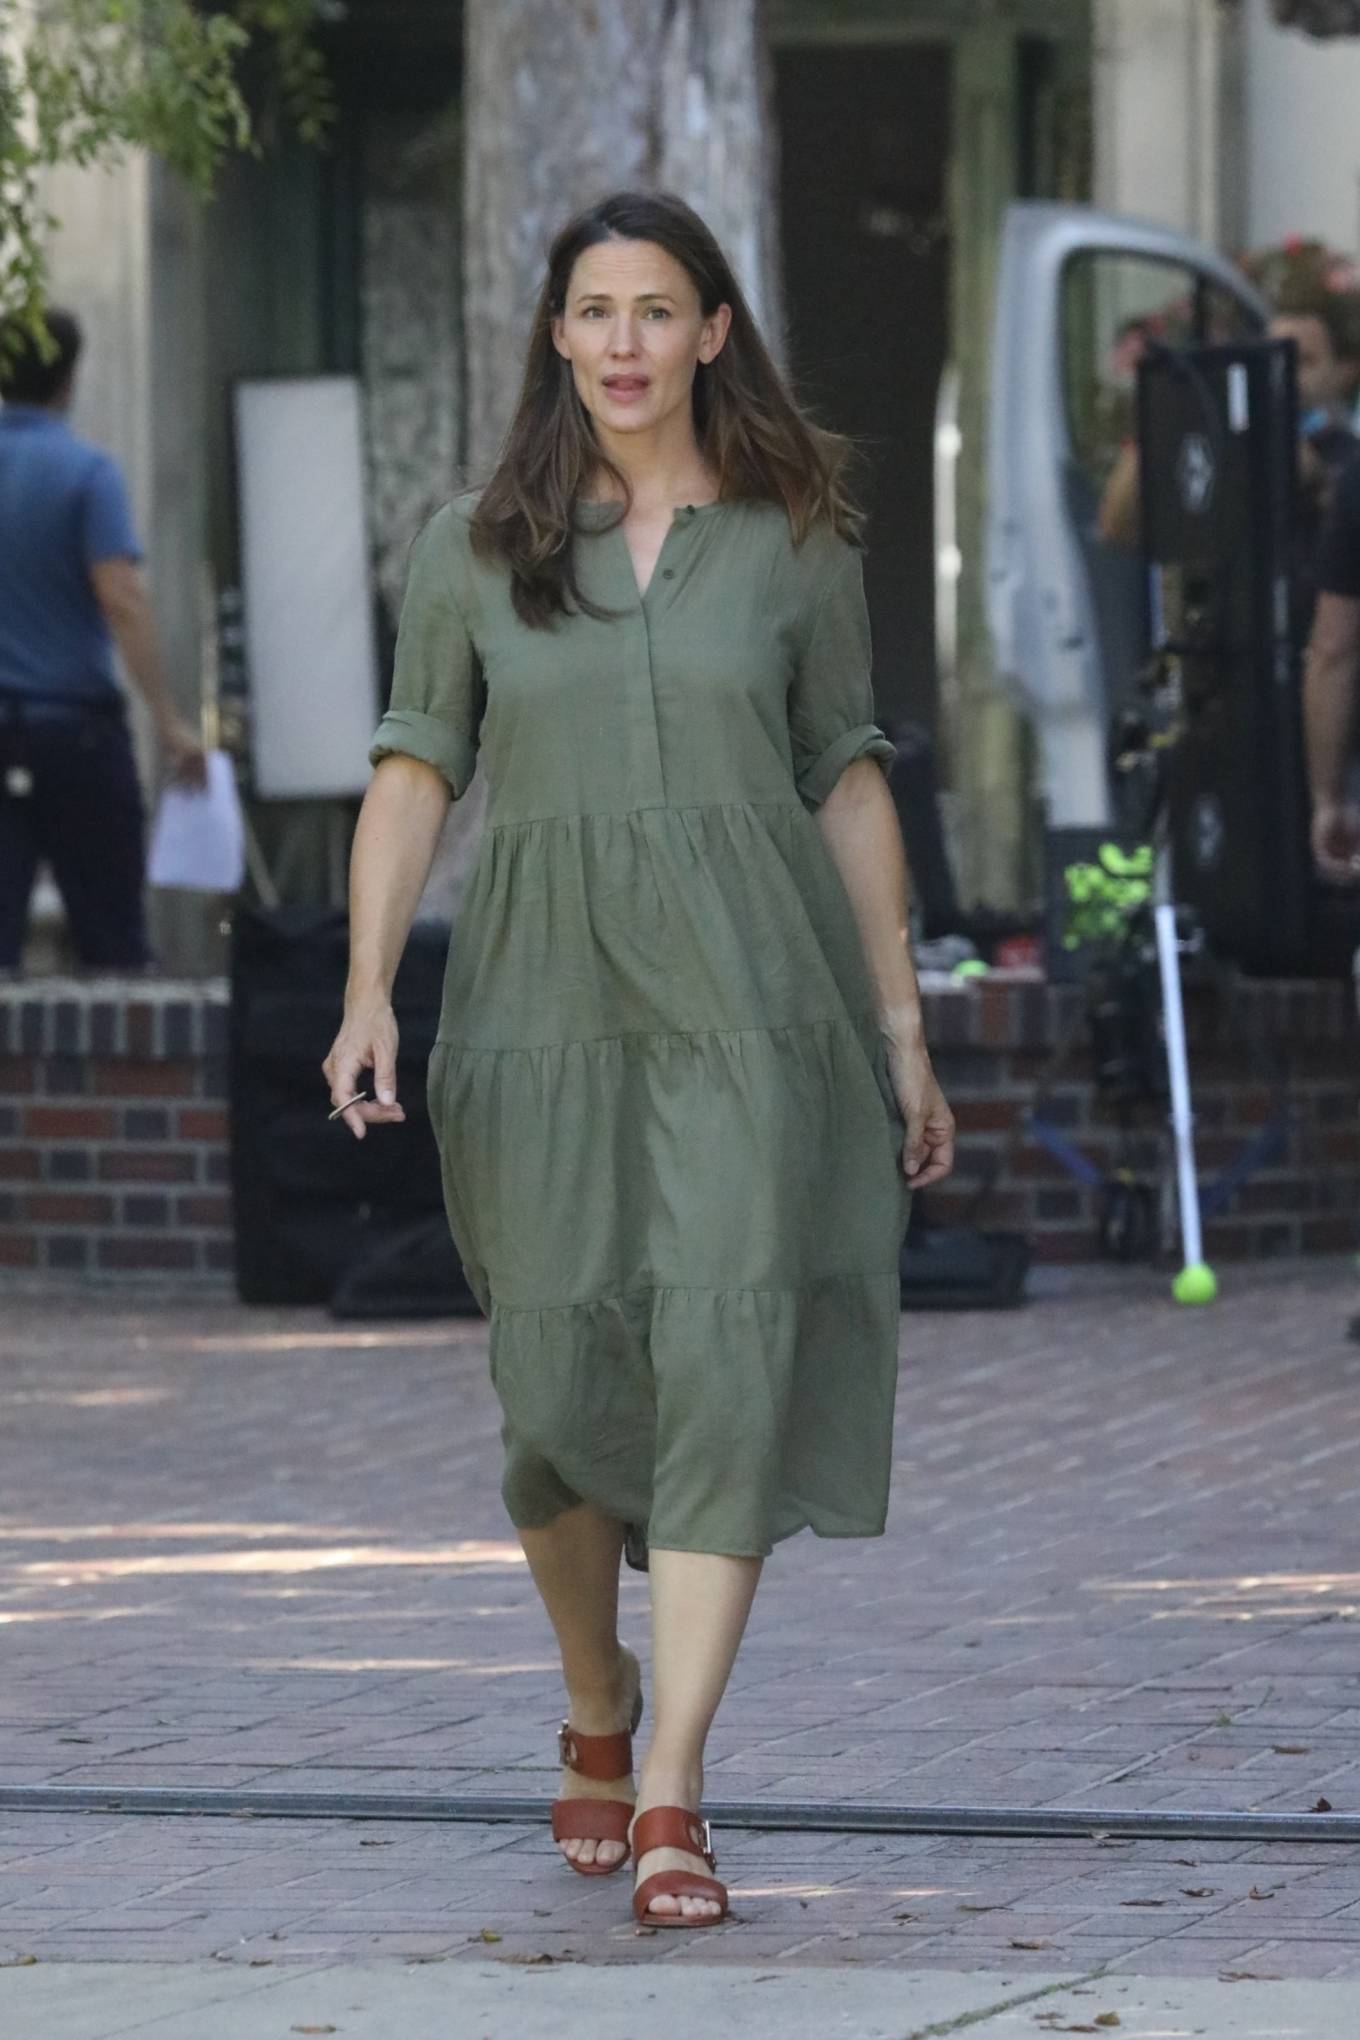 jennifer-garner-in-olive-green-dress-while-filming-in-pacific-palisades